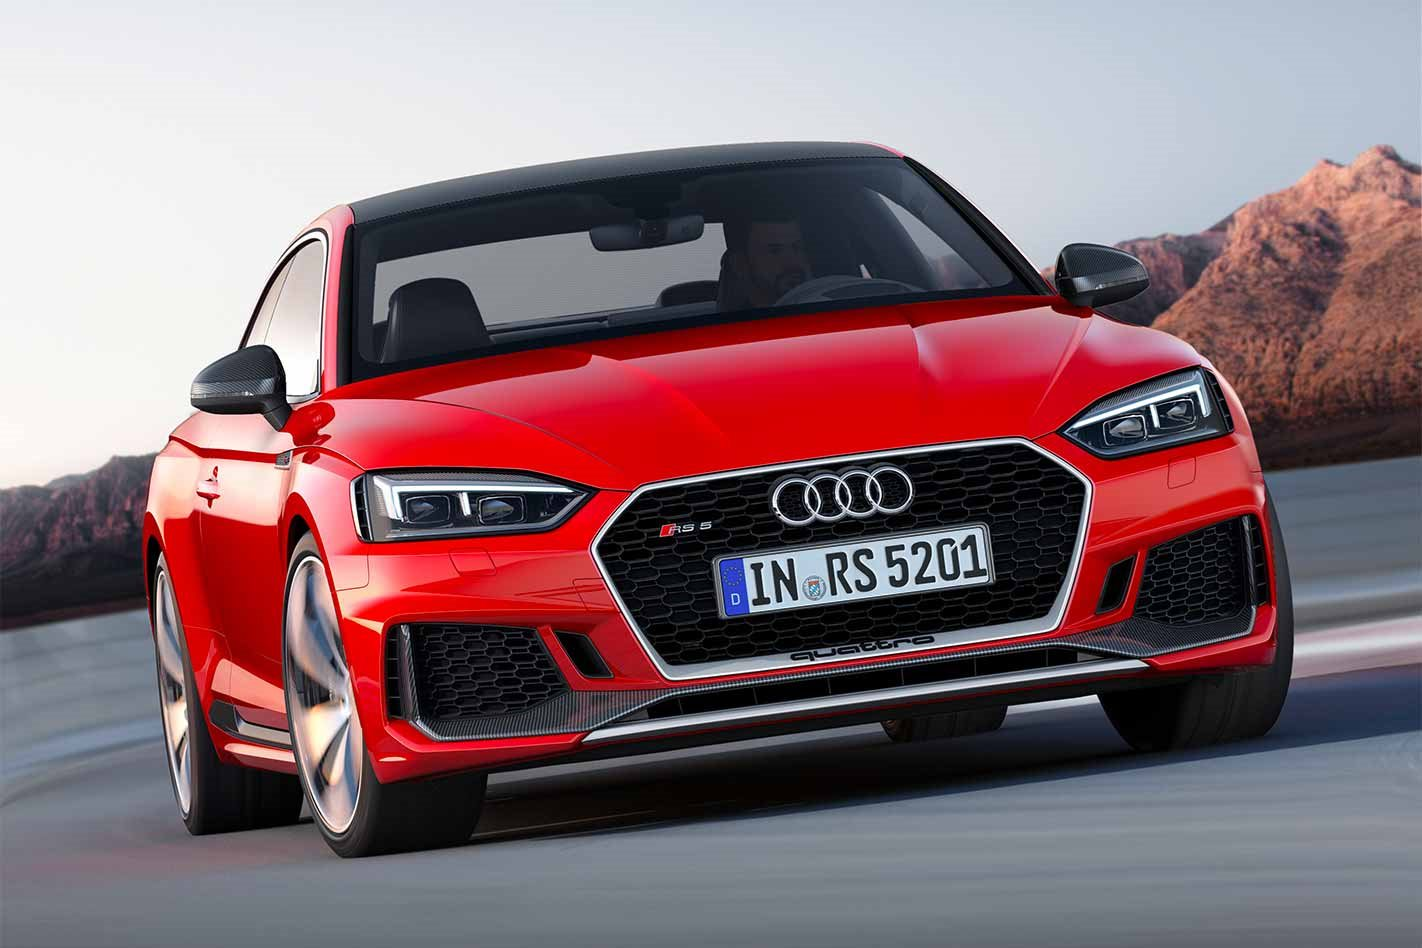 2017 Audi RS5 front